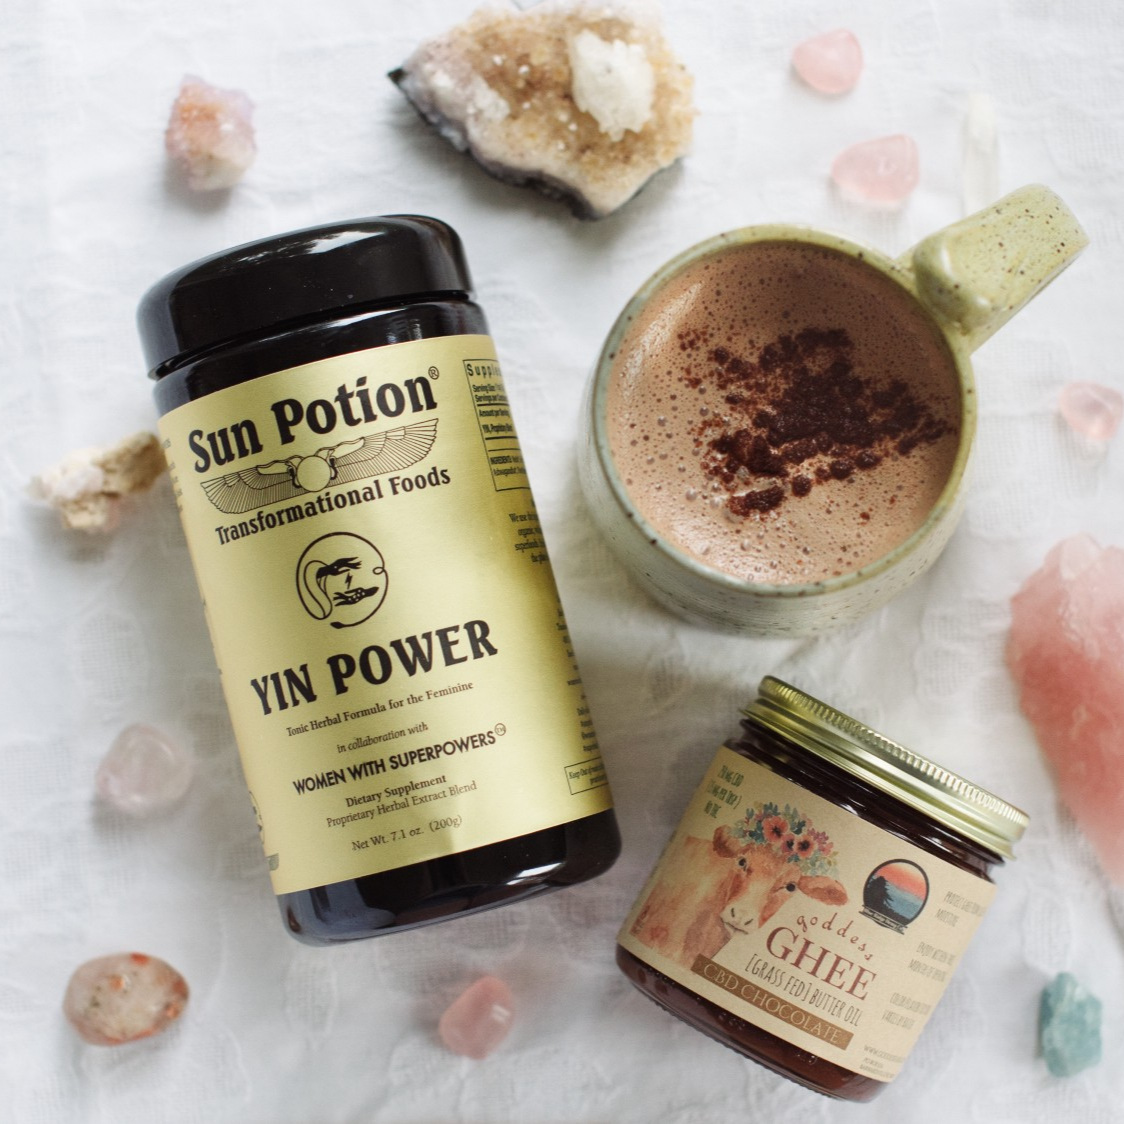 Yin Power by Sun Potion